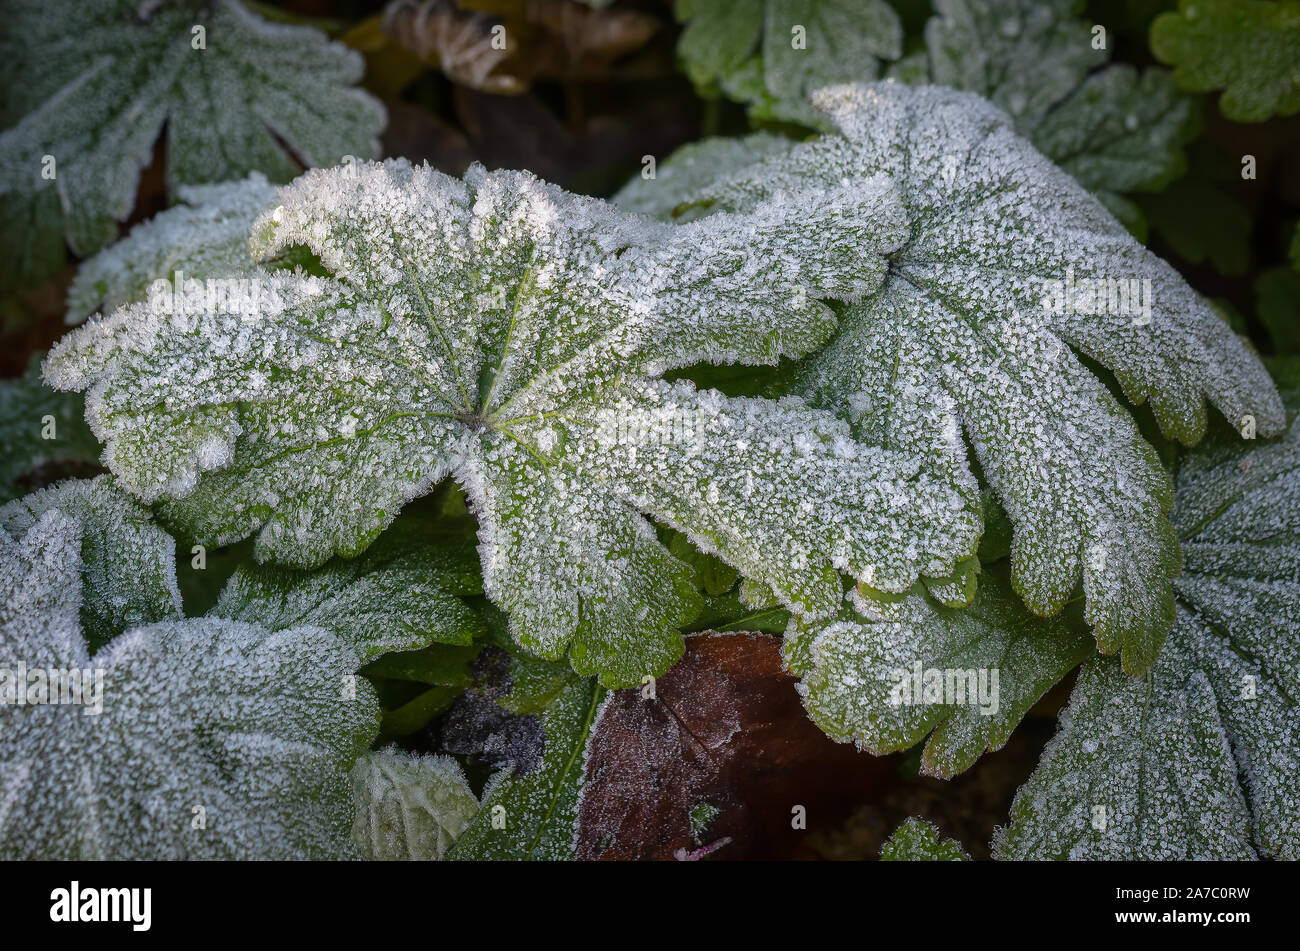 The frost warns of the arrival of winter. Stock Photo